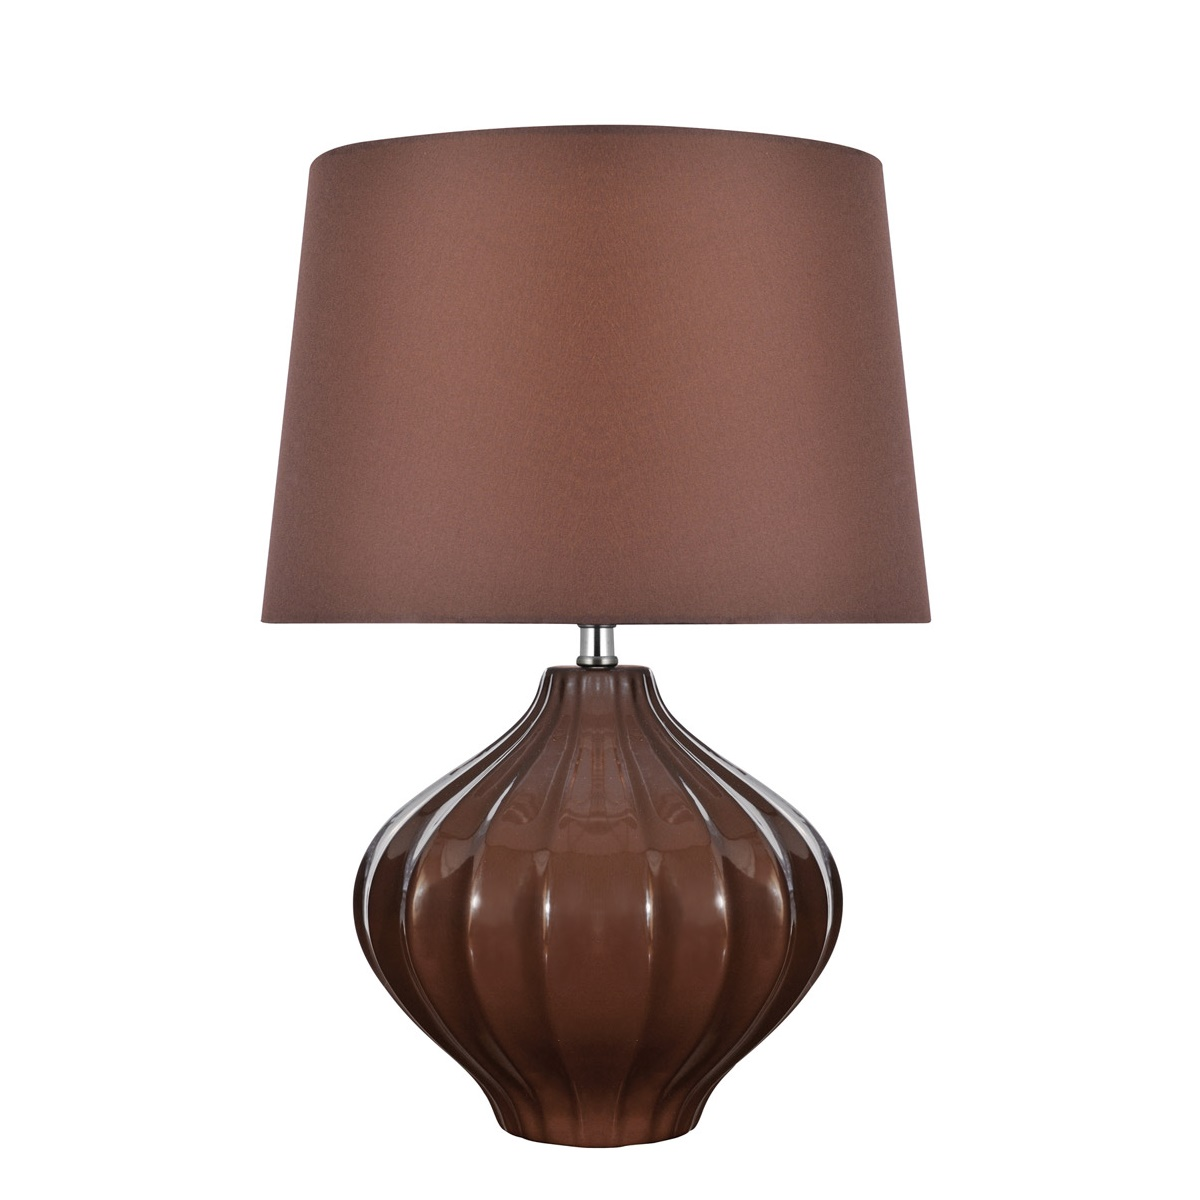 Lite Source Gordana 1 Light Table Lamp In Coffee Ceramic With Coffee Fabric L Brilliant Source